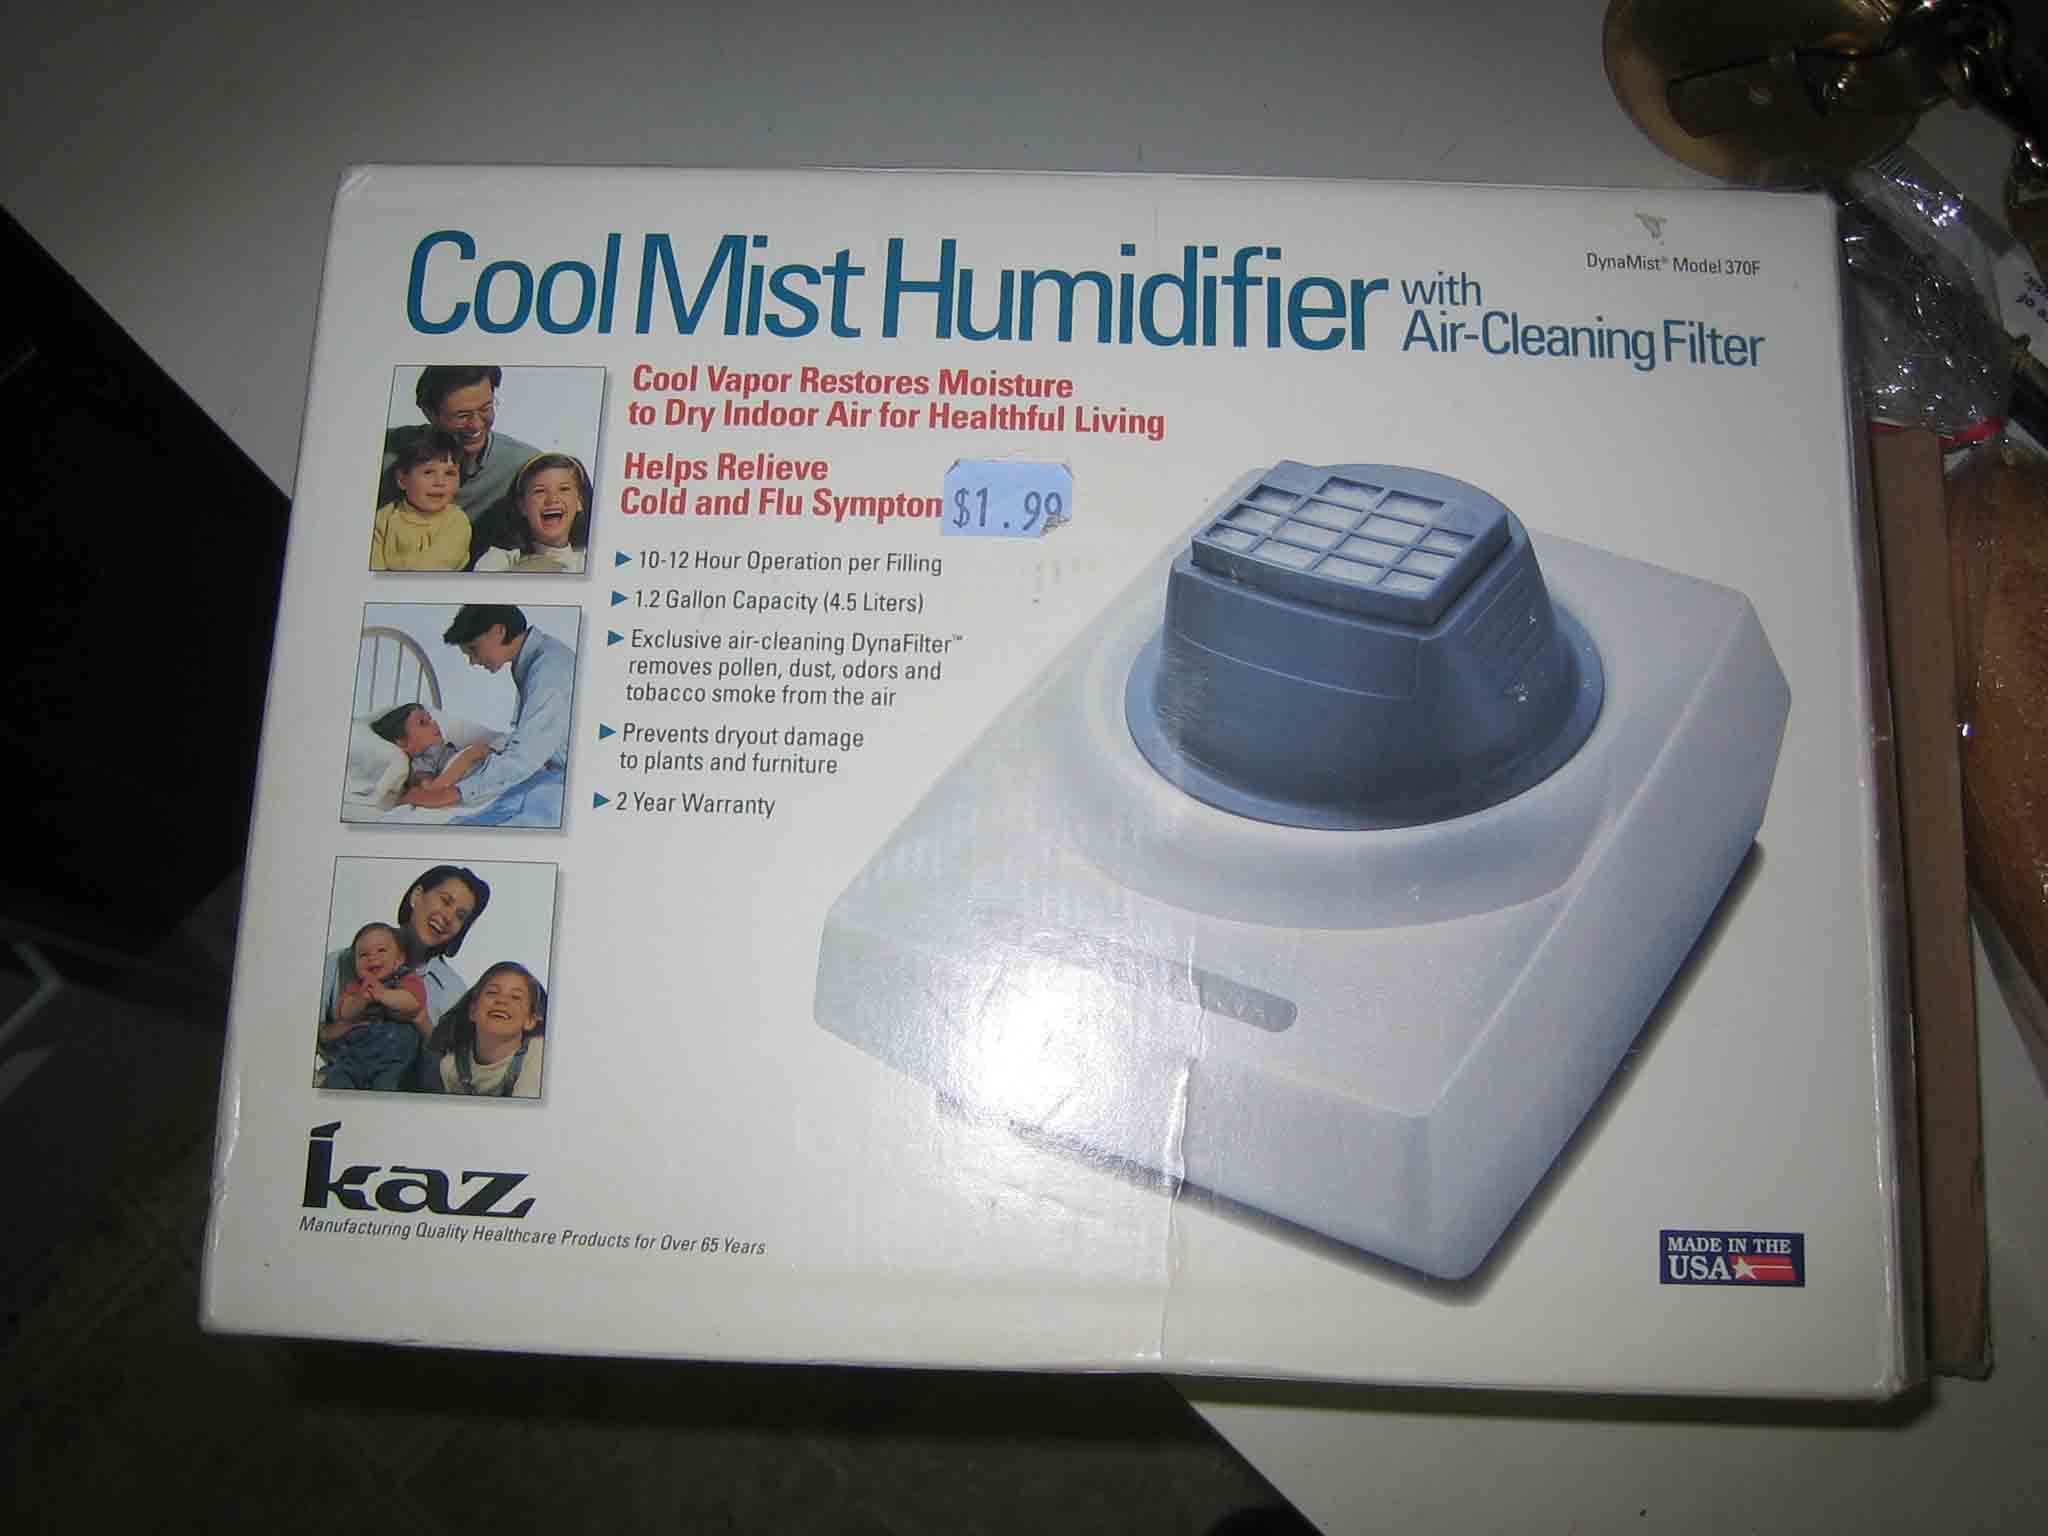 Cool Mist Humidifier Makes Room Colder